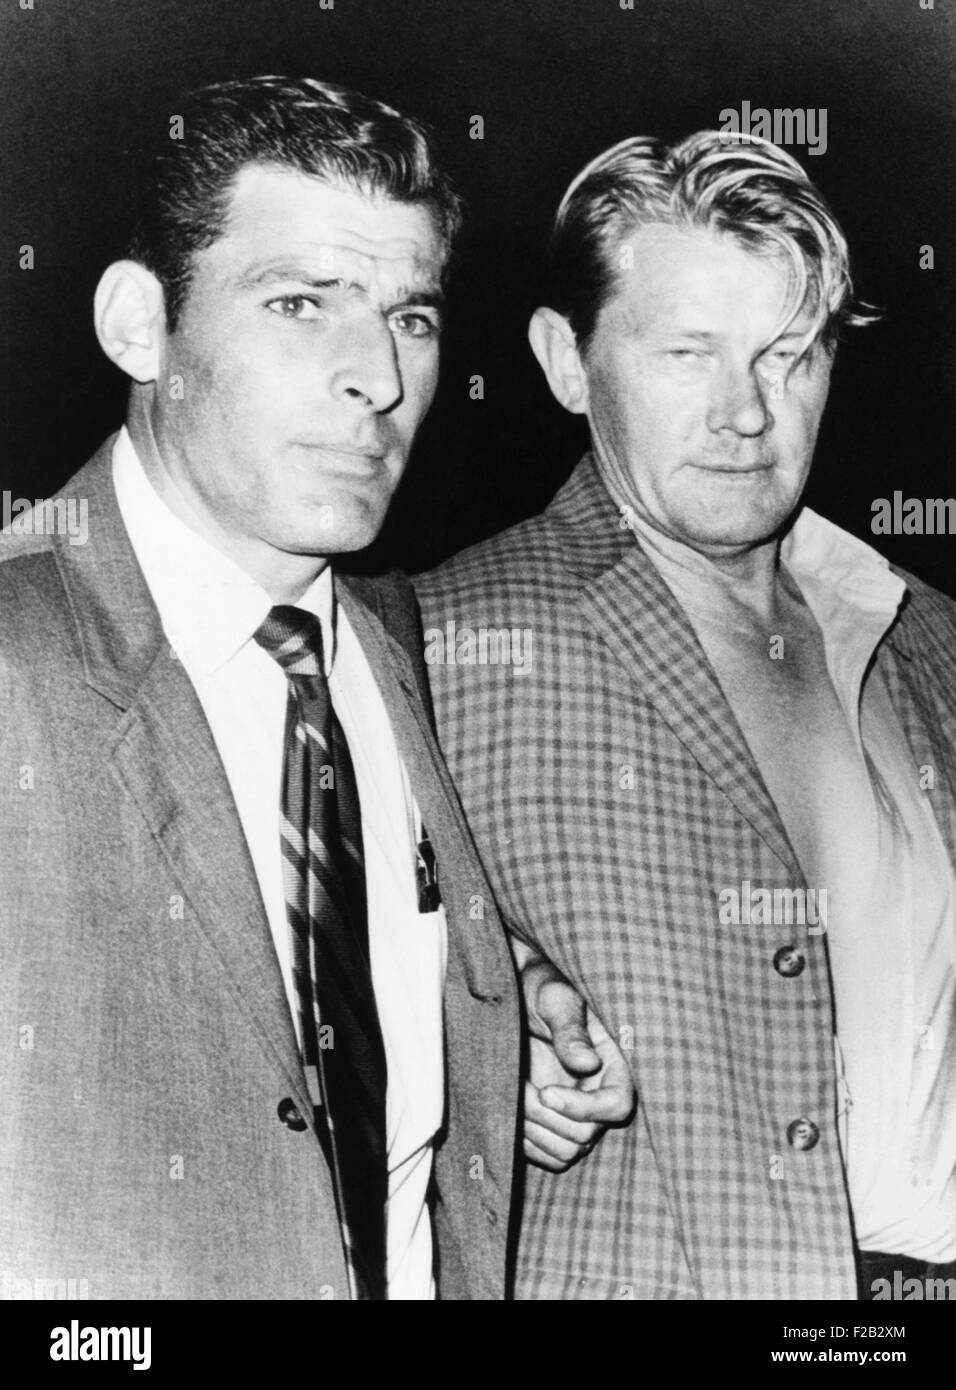 Arthur G. Barkley (right), an Arizona truck driver who hijacked TWA Flight 486 in FBI custody. On June 4, 1970, - Stock Image